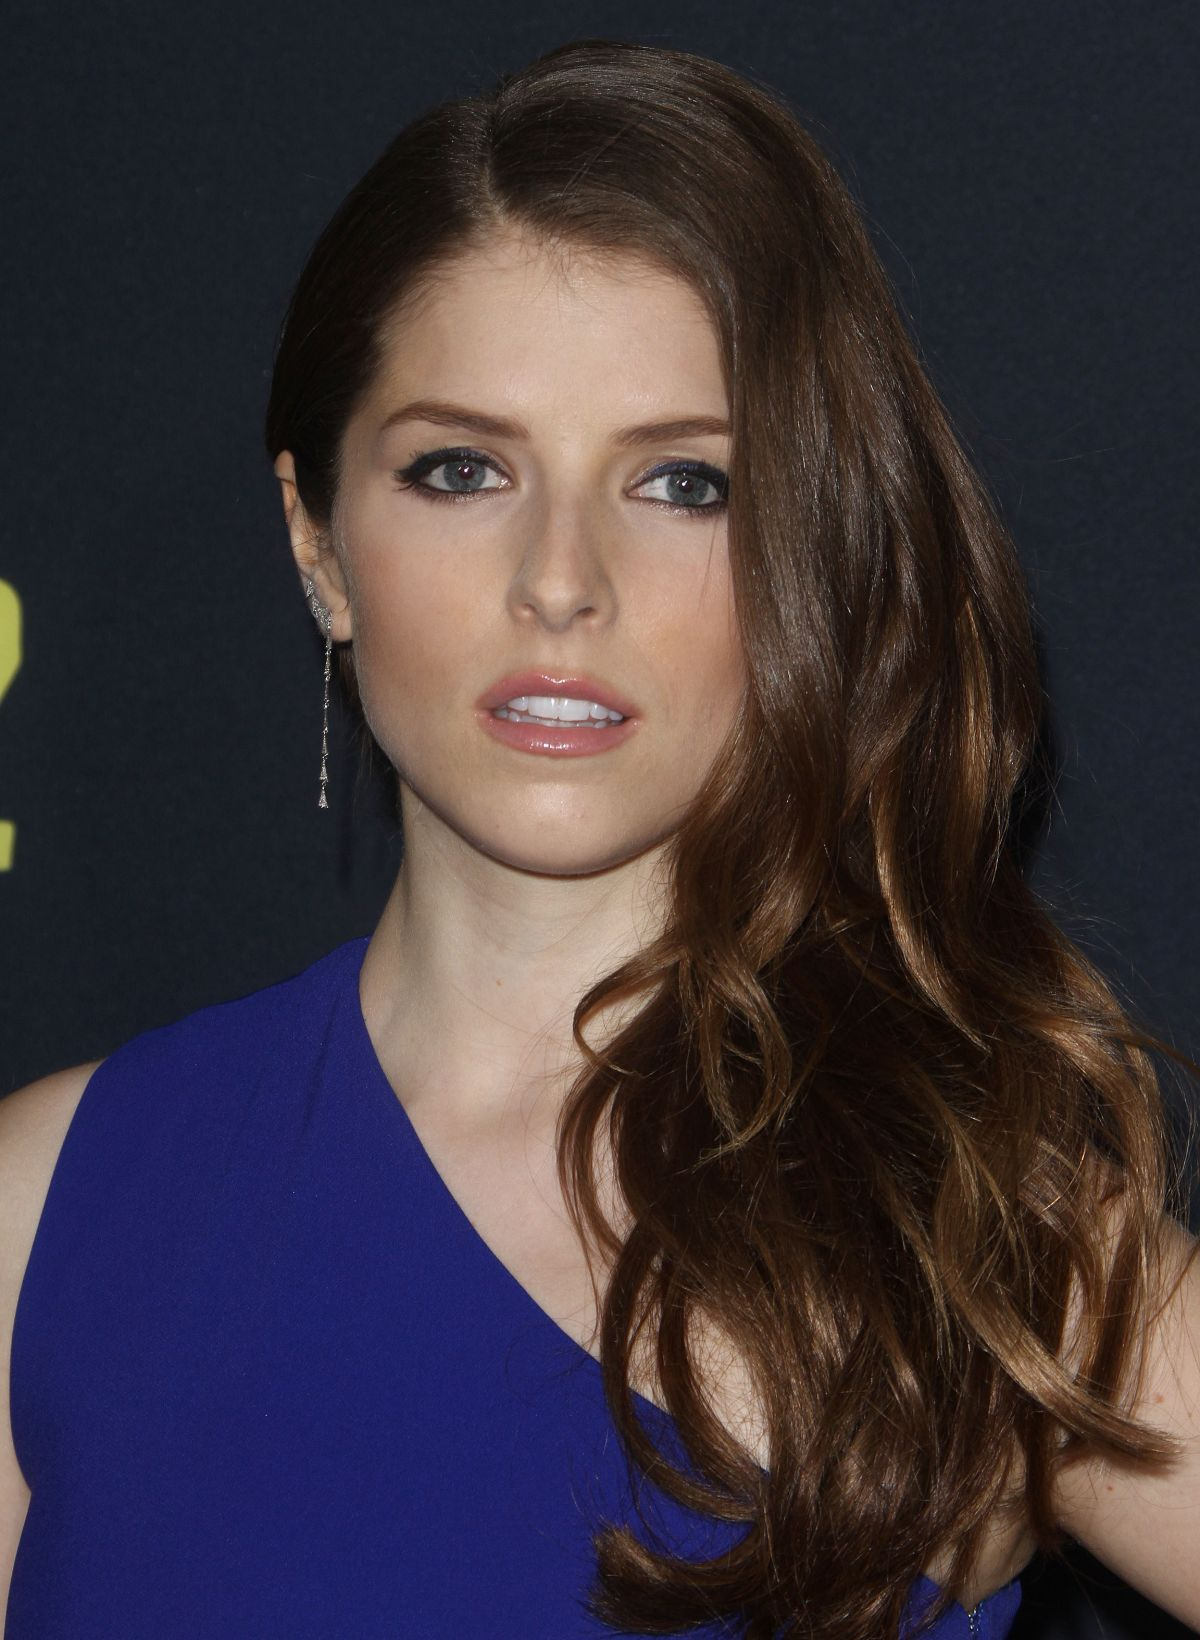 ANNA KENDRICK at Pitch Perfect 2 Premiere in Los Angeles - HawtCelebs ... Anna Kendrick